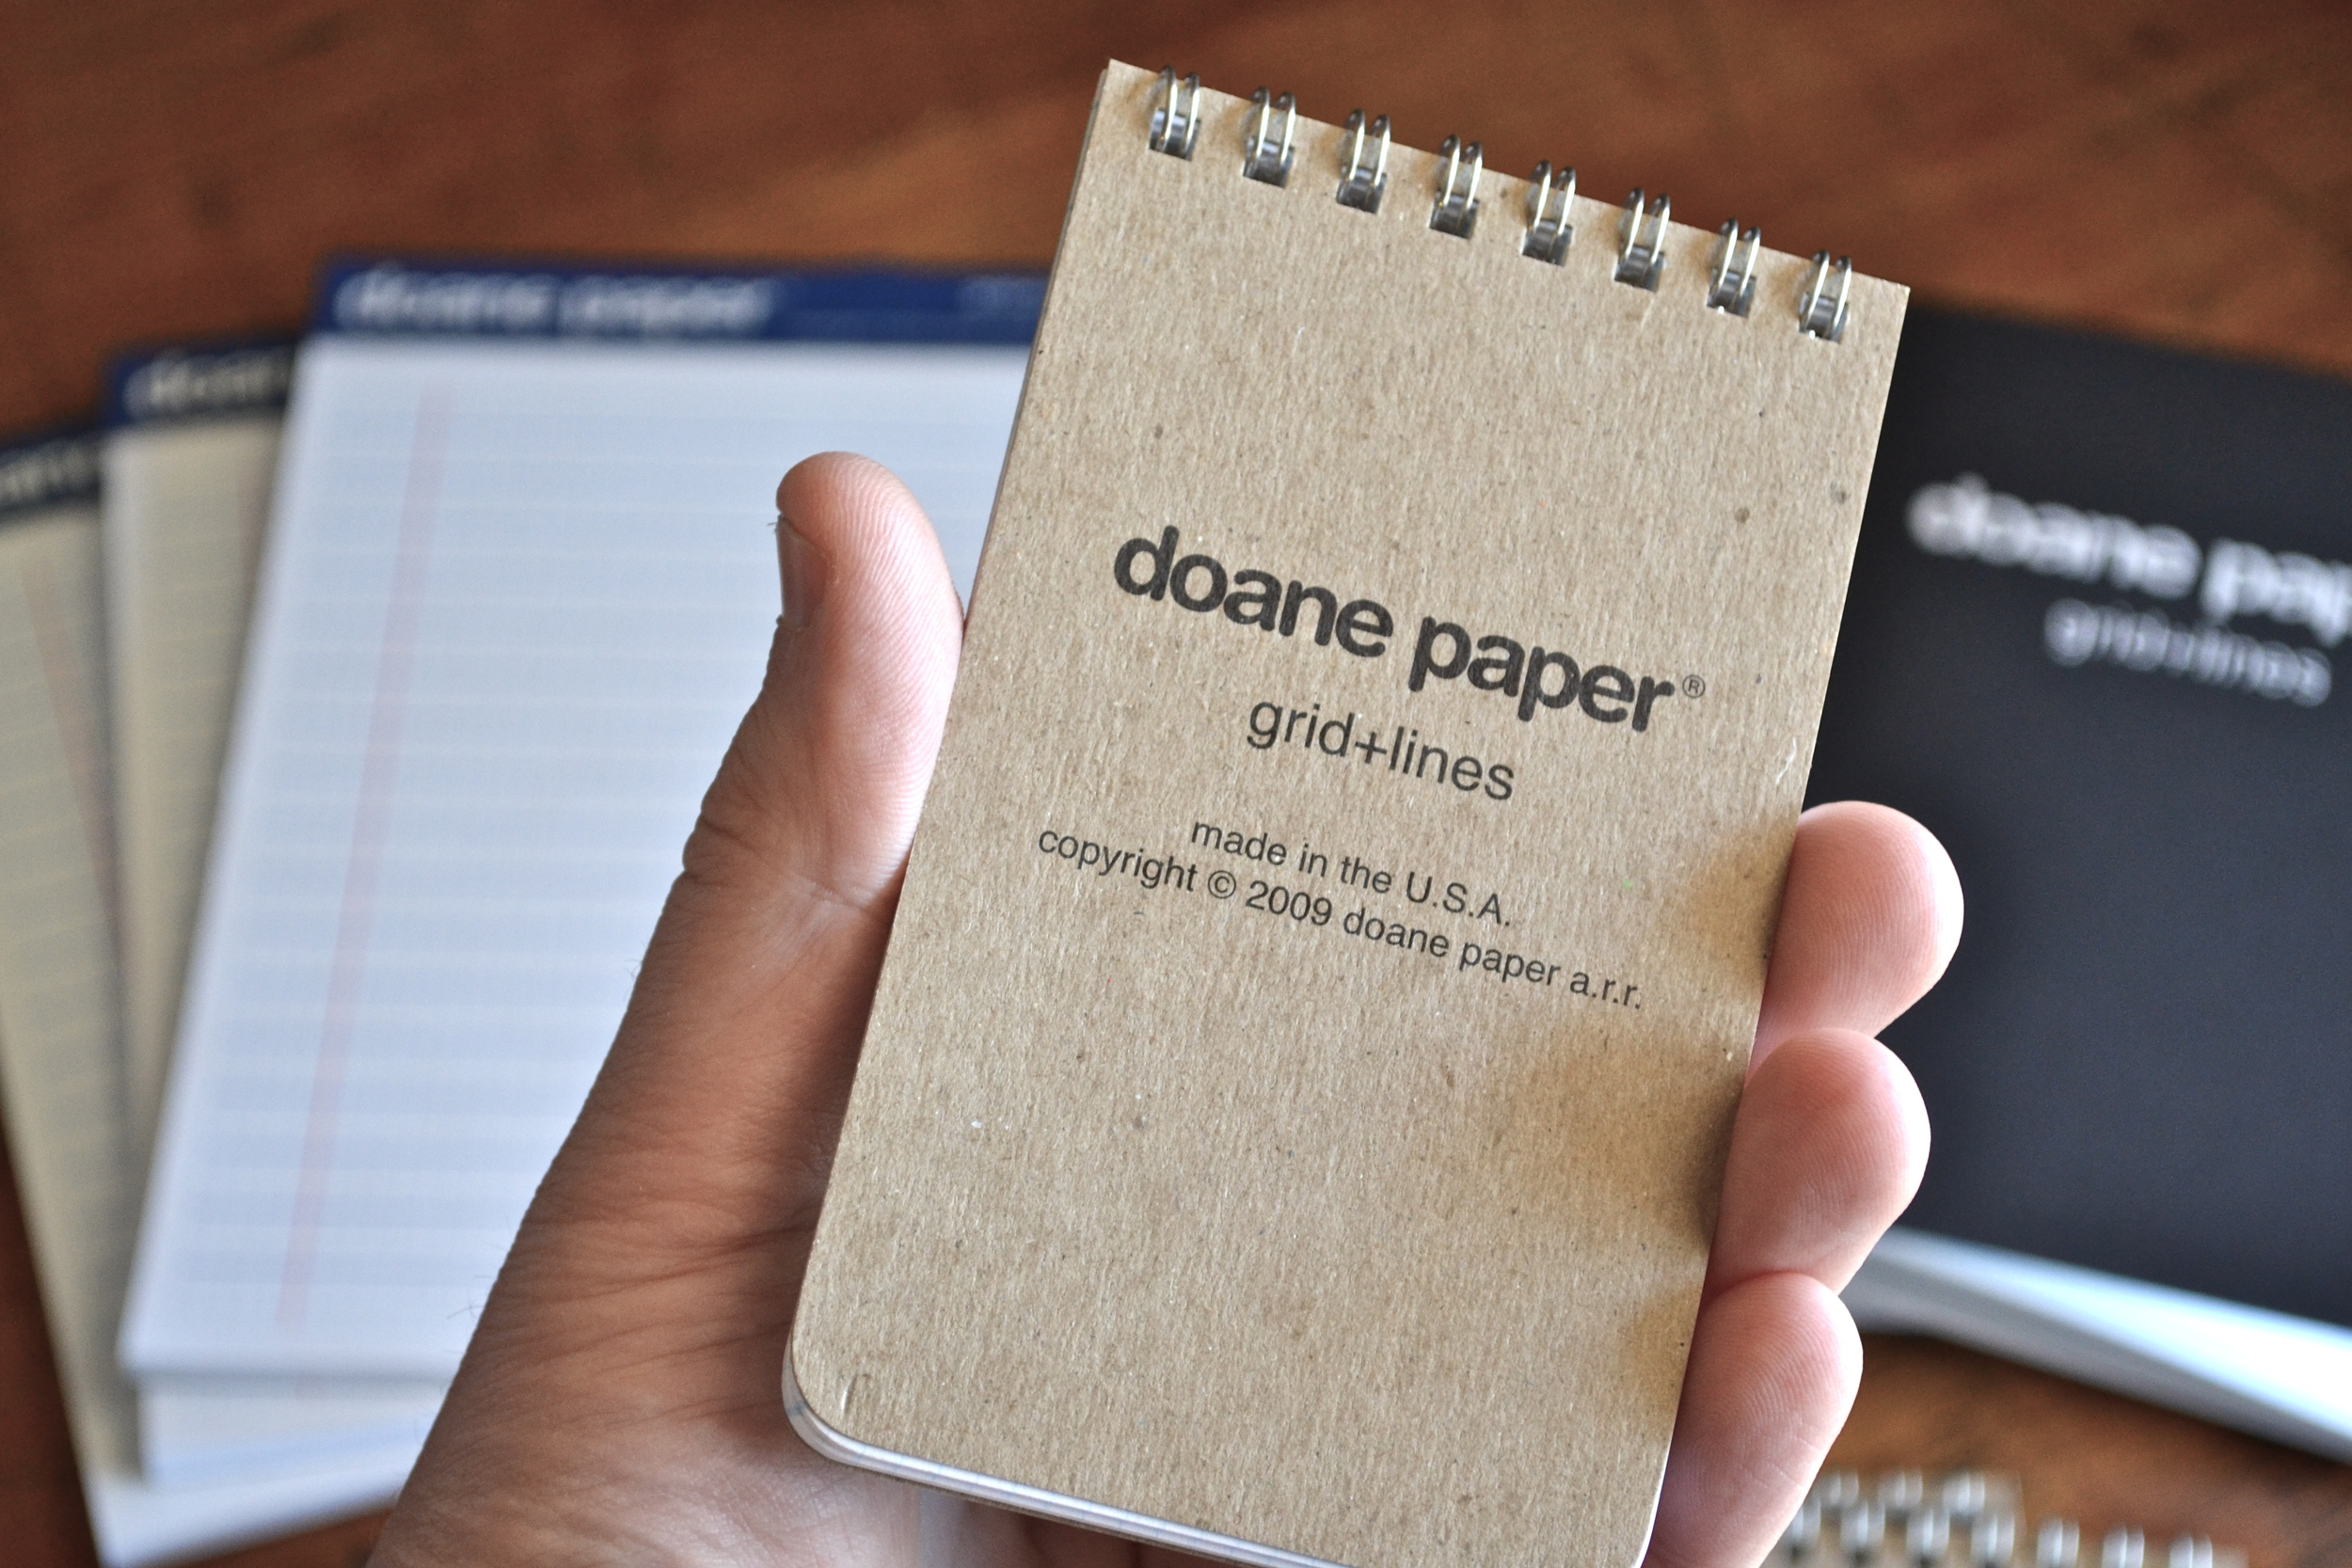 Small Flap Jotter in hand, perfect for small notes/lists.